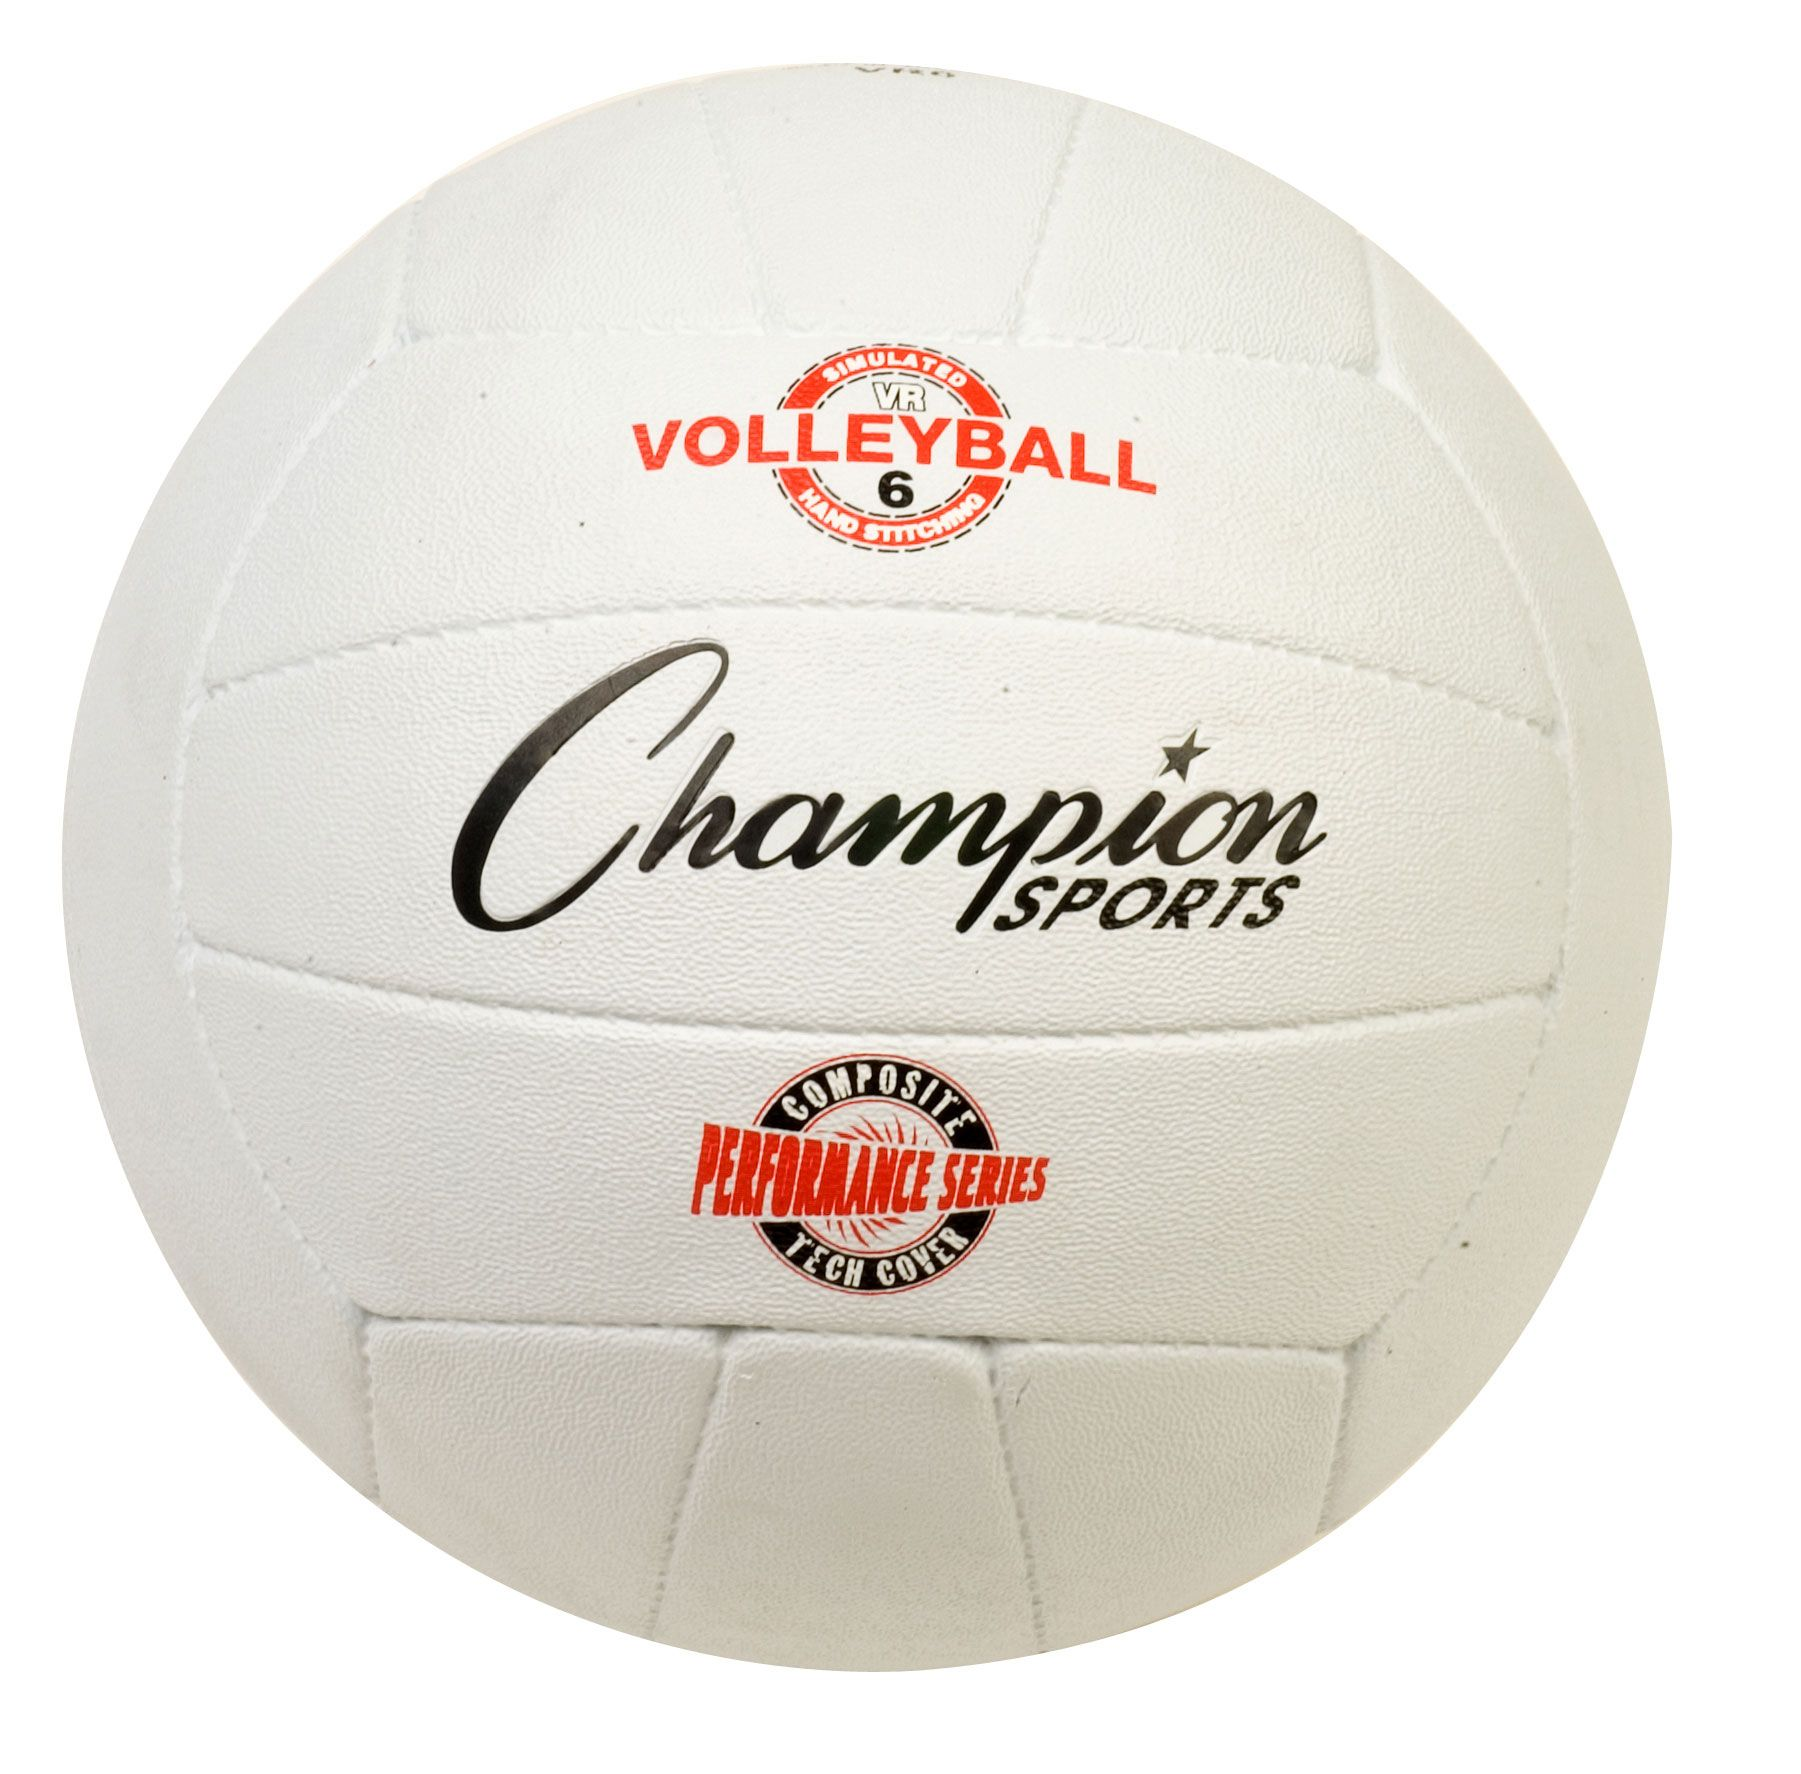 Physical Education Volleyball Volleyball Balls Performance Series White Pro Rubber Volleyball Set Volleyball Volleyballs